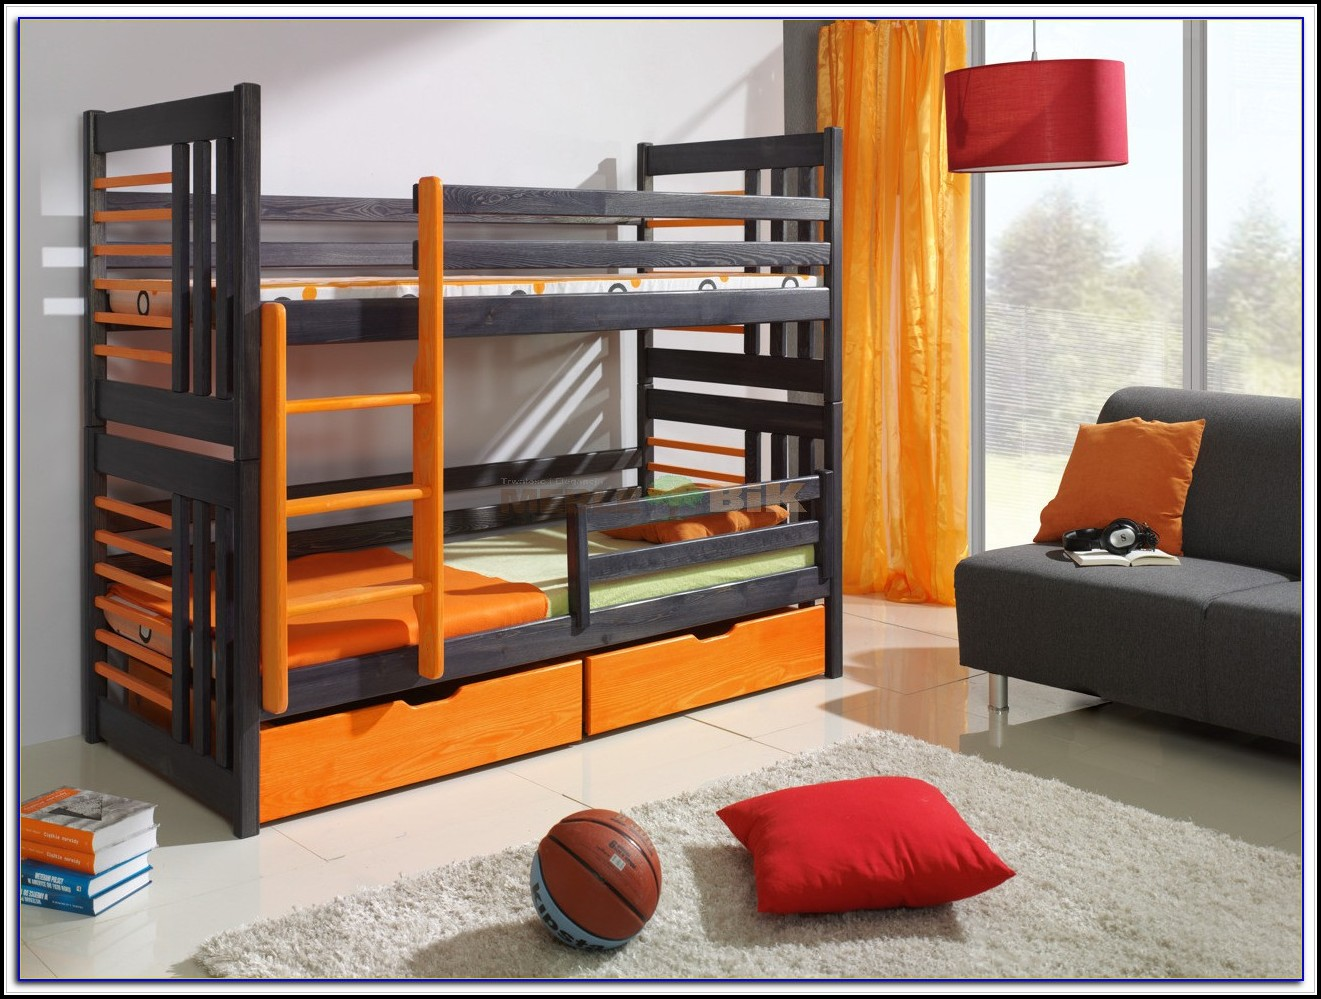 Bunk Beds With Free Mattresses Included